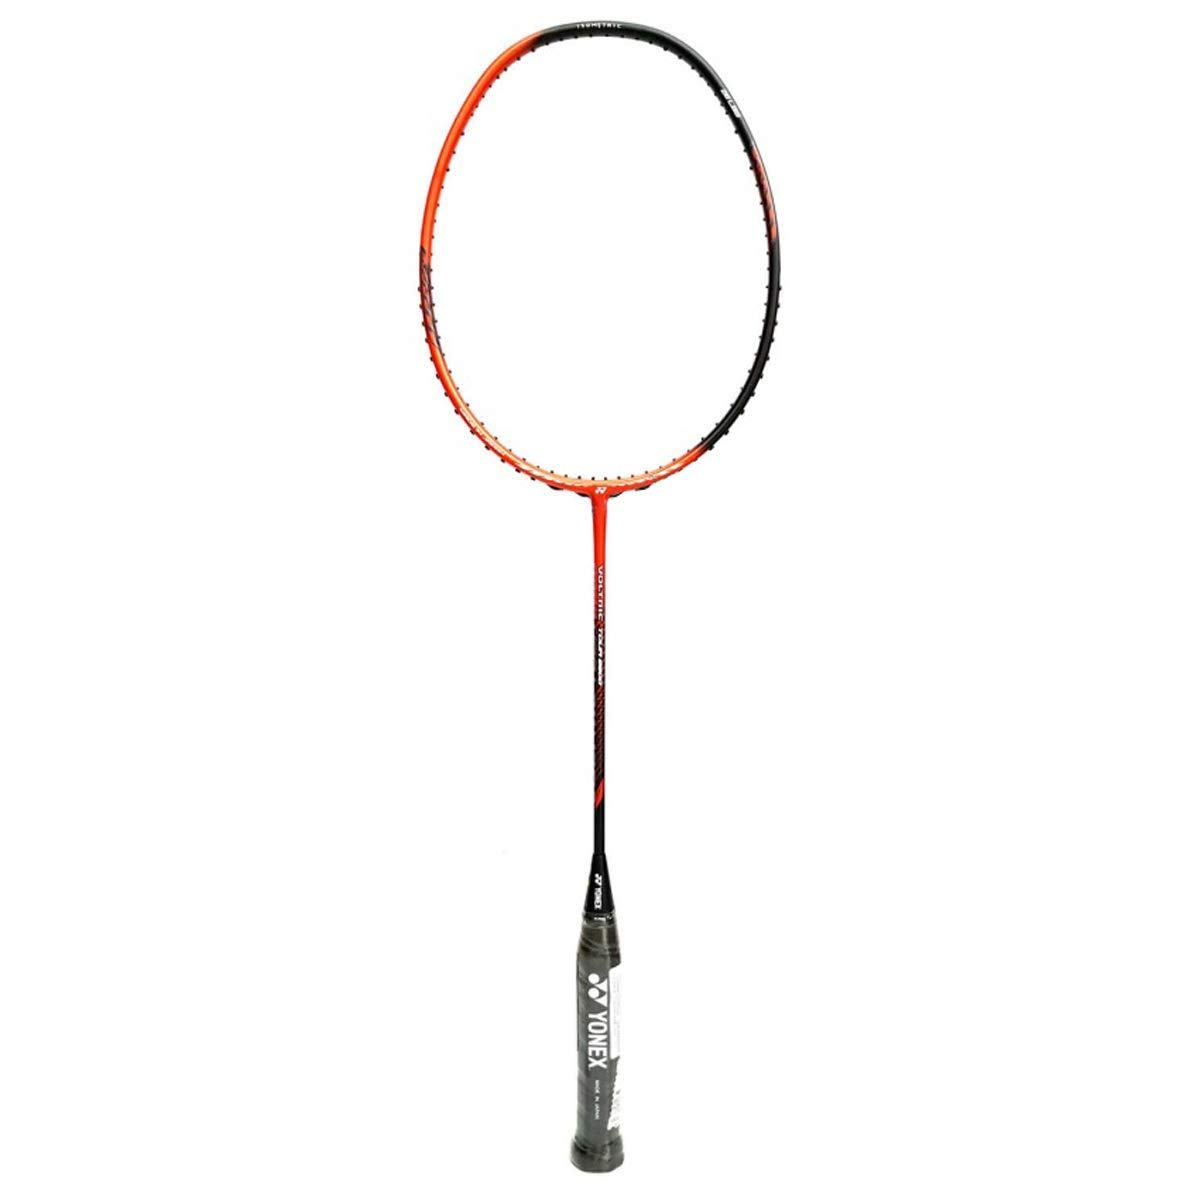 The new Voltric Tour 8800 lightweight badminton racket allows for straightforward handling while maintaining the VOLTRIC series.